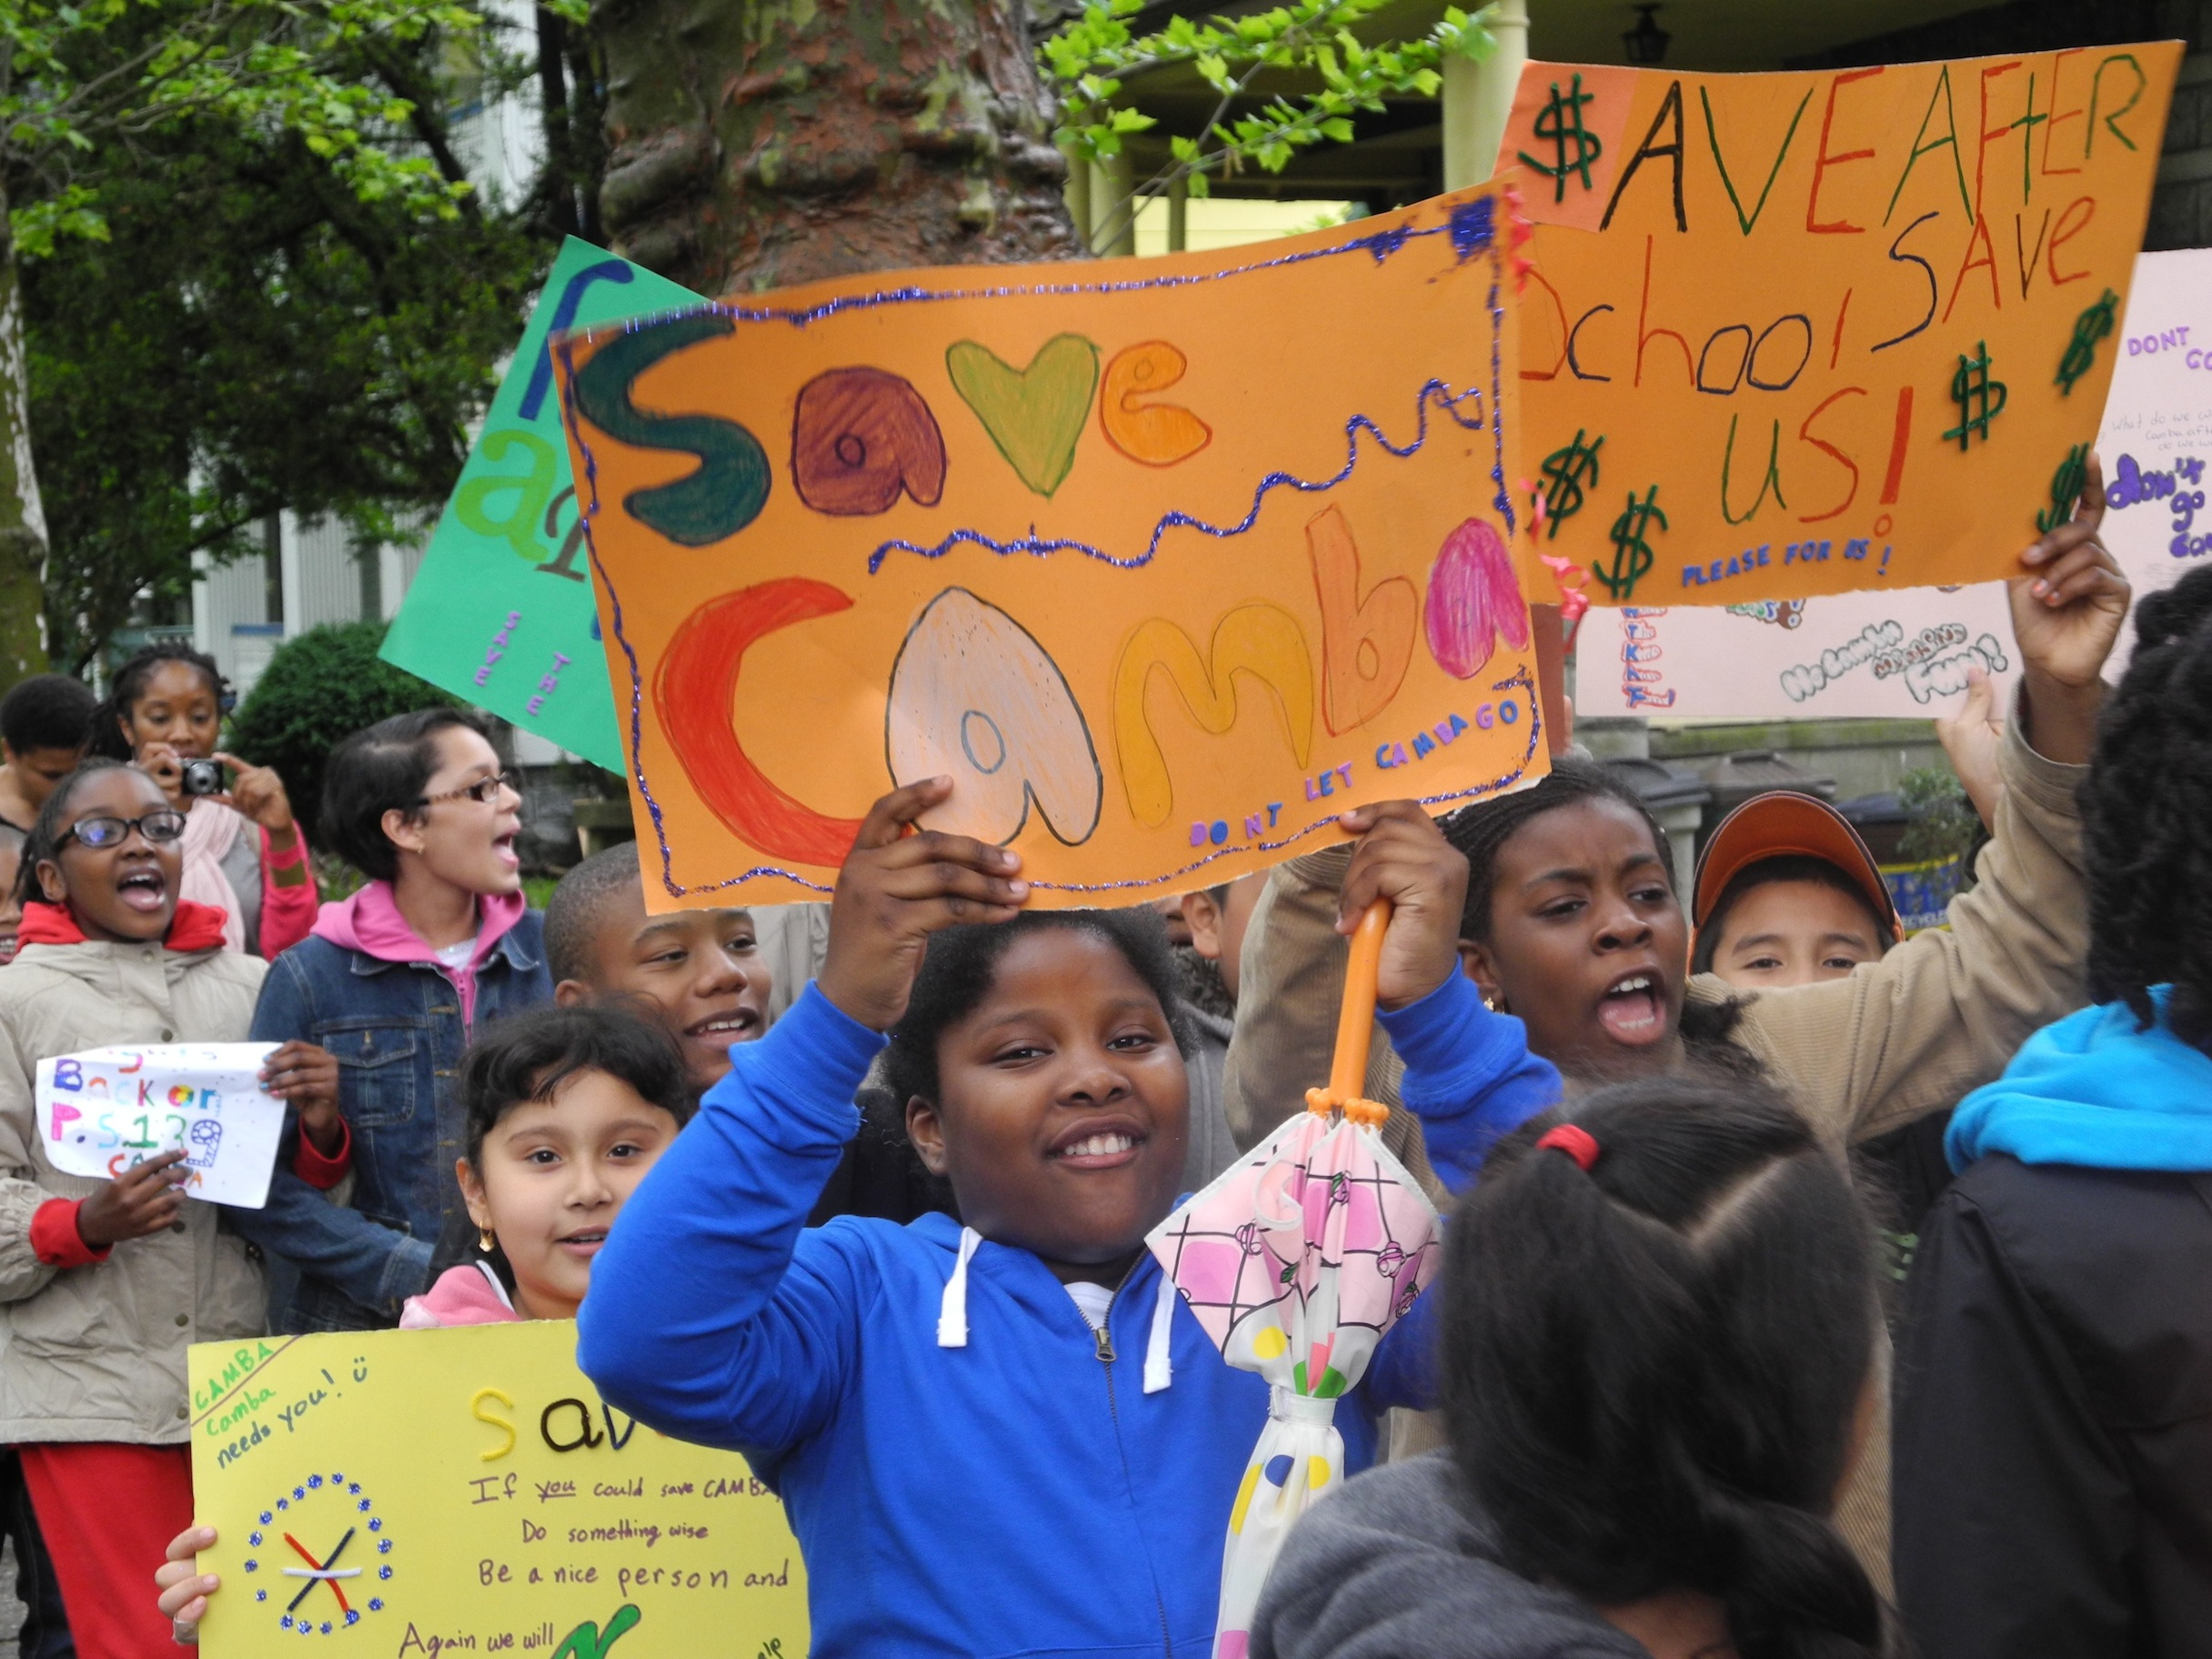 Brooklyn children voice their opposition to after-school budget cuts.